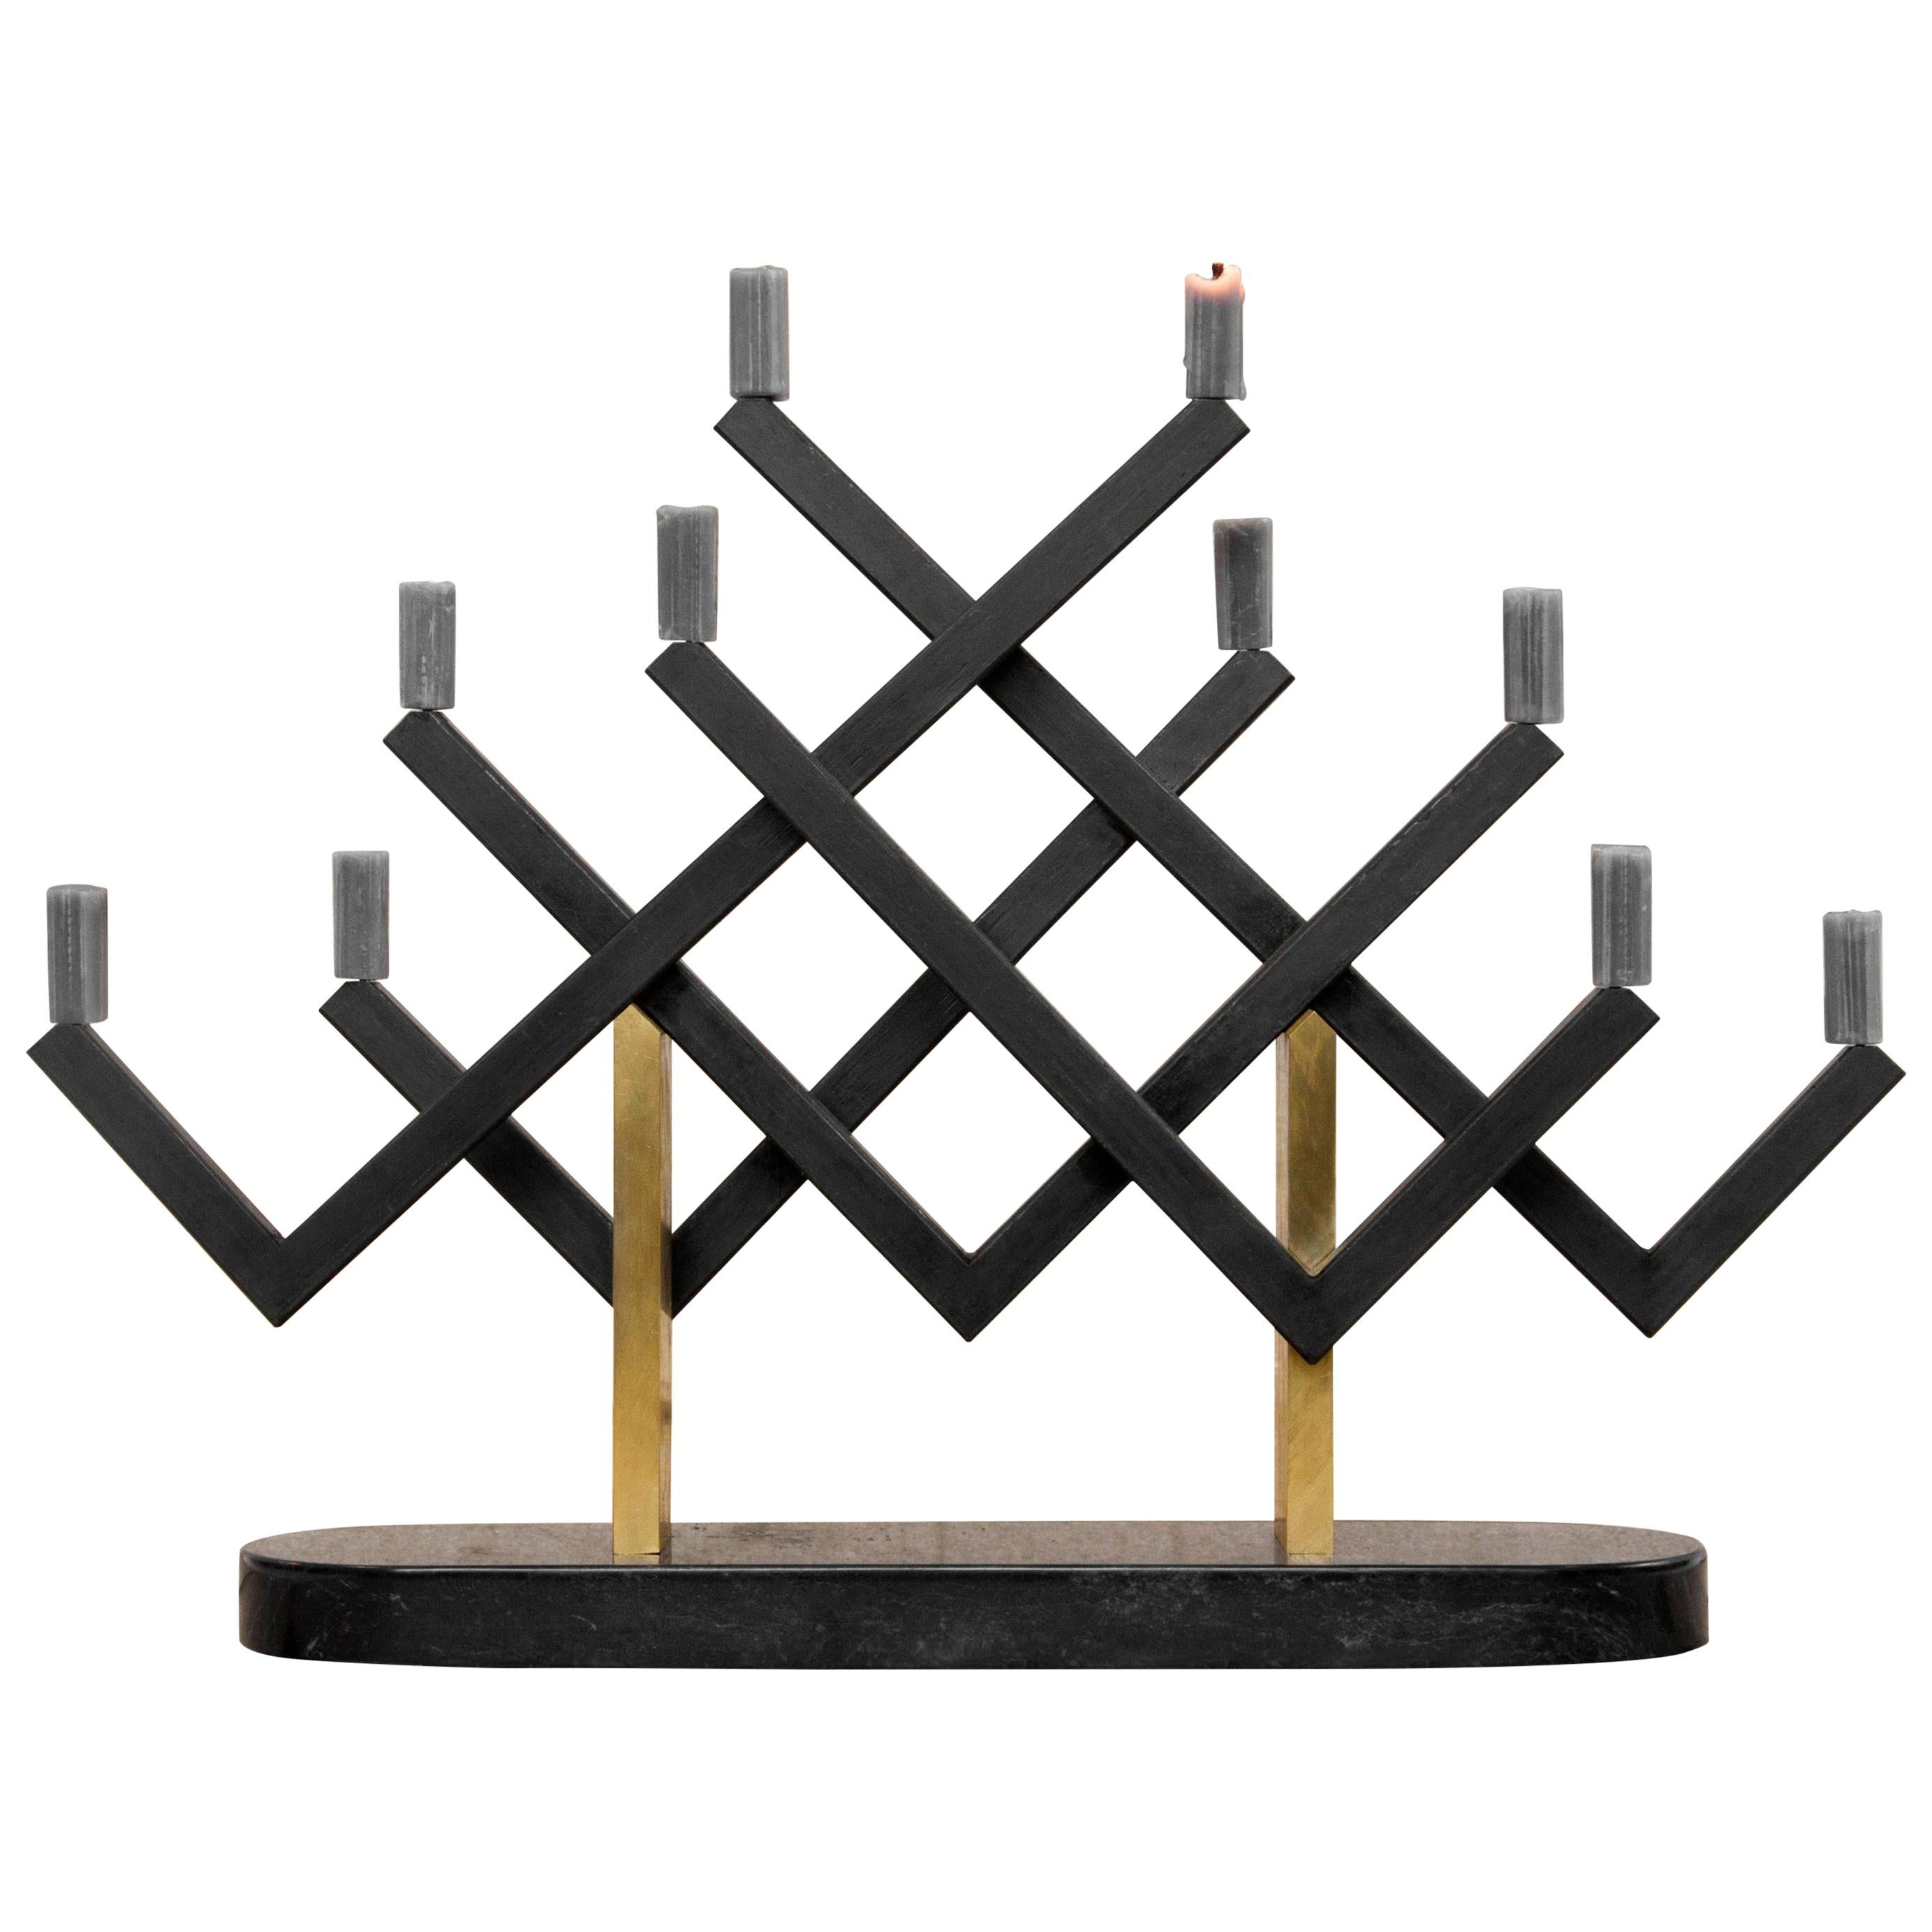 Marble and Brass Cancello Candelabra by Oeuffice